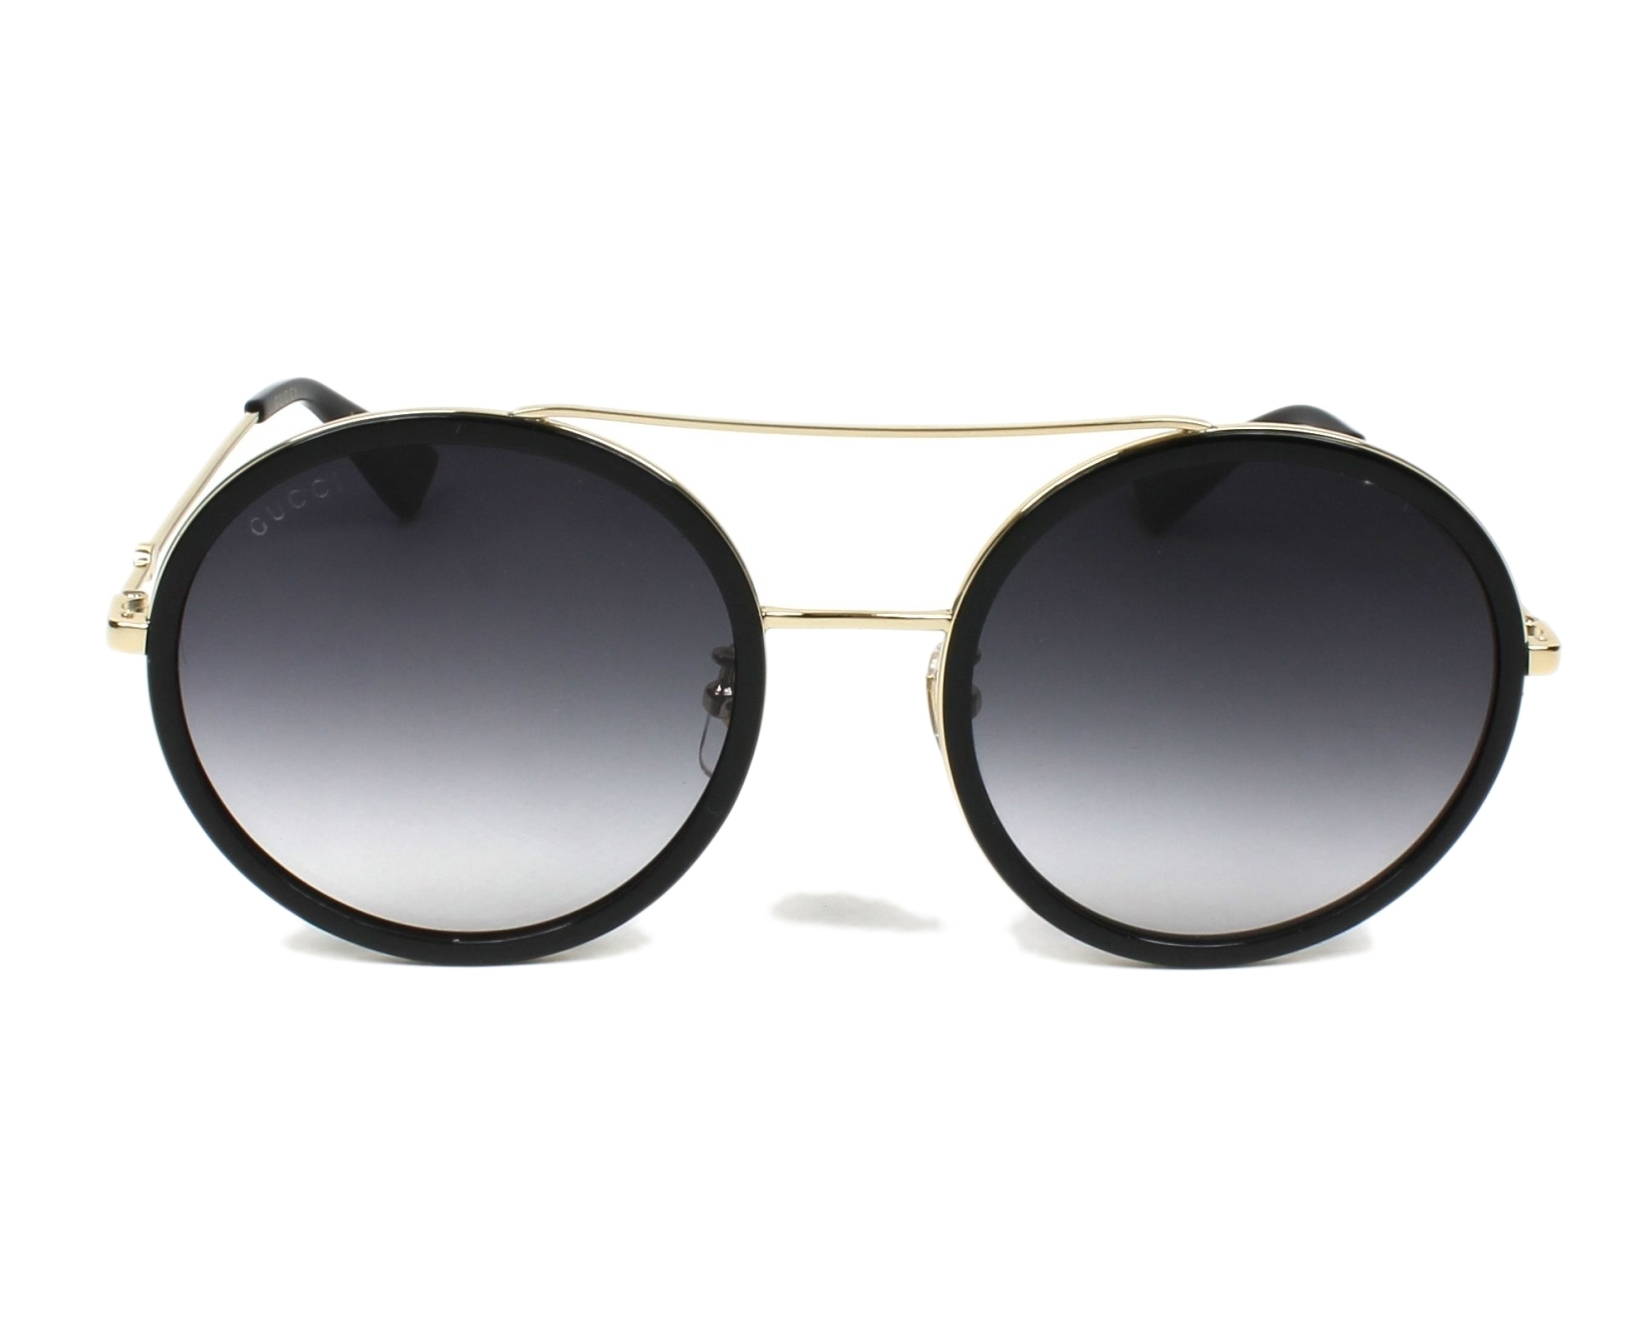 78b95a5ccd7 Sunglasses Gucci GG-0061-S 001 56-22 Black Gold front view